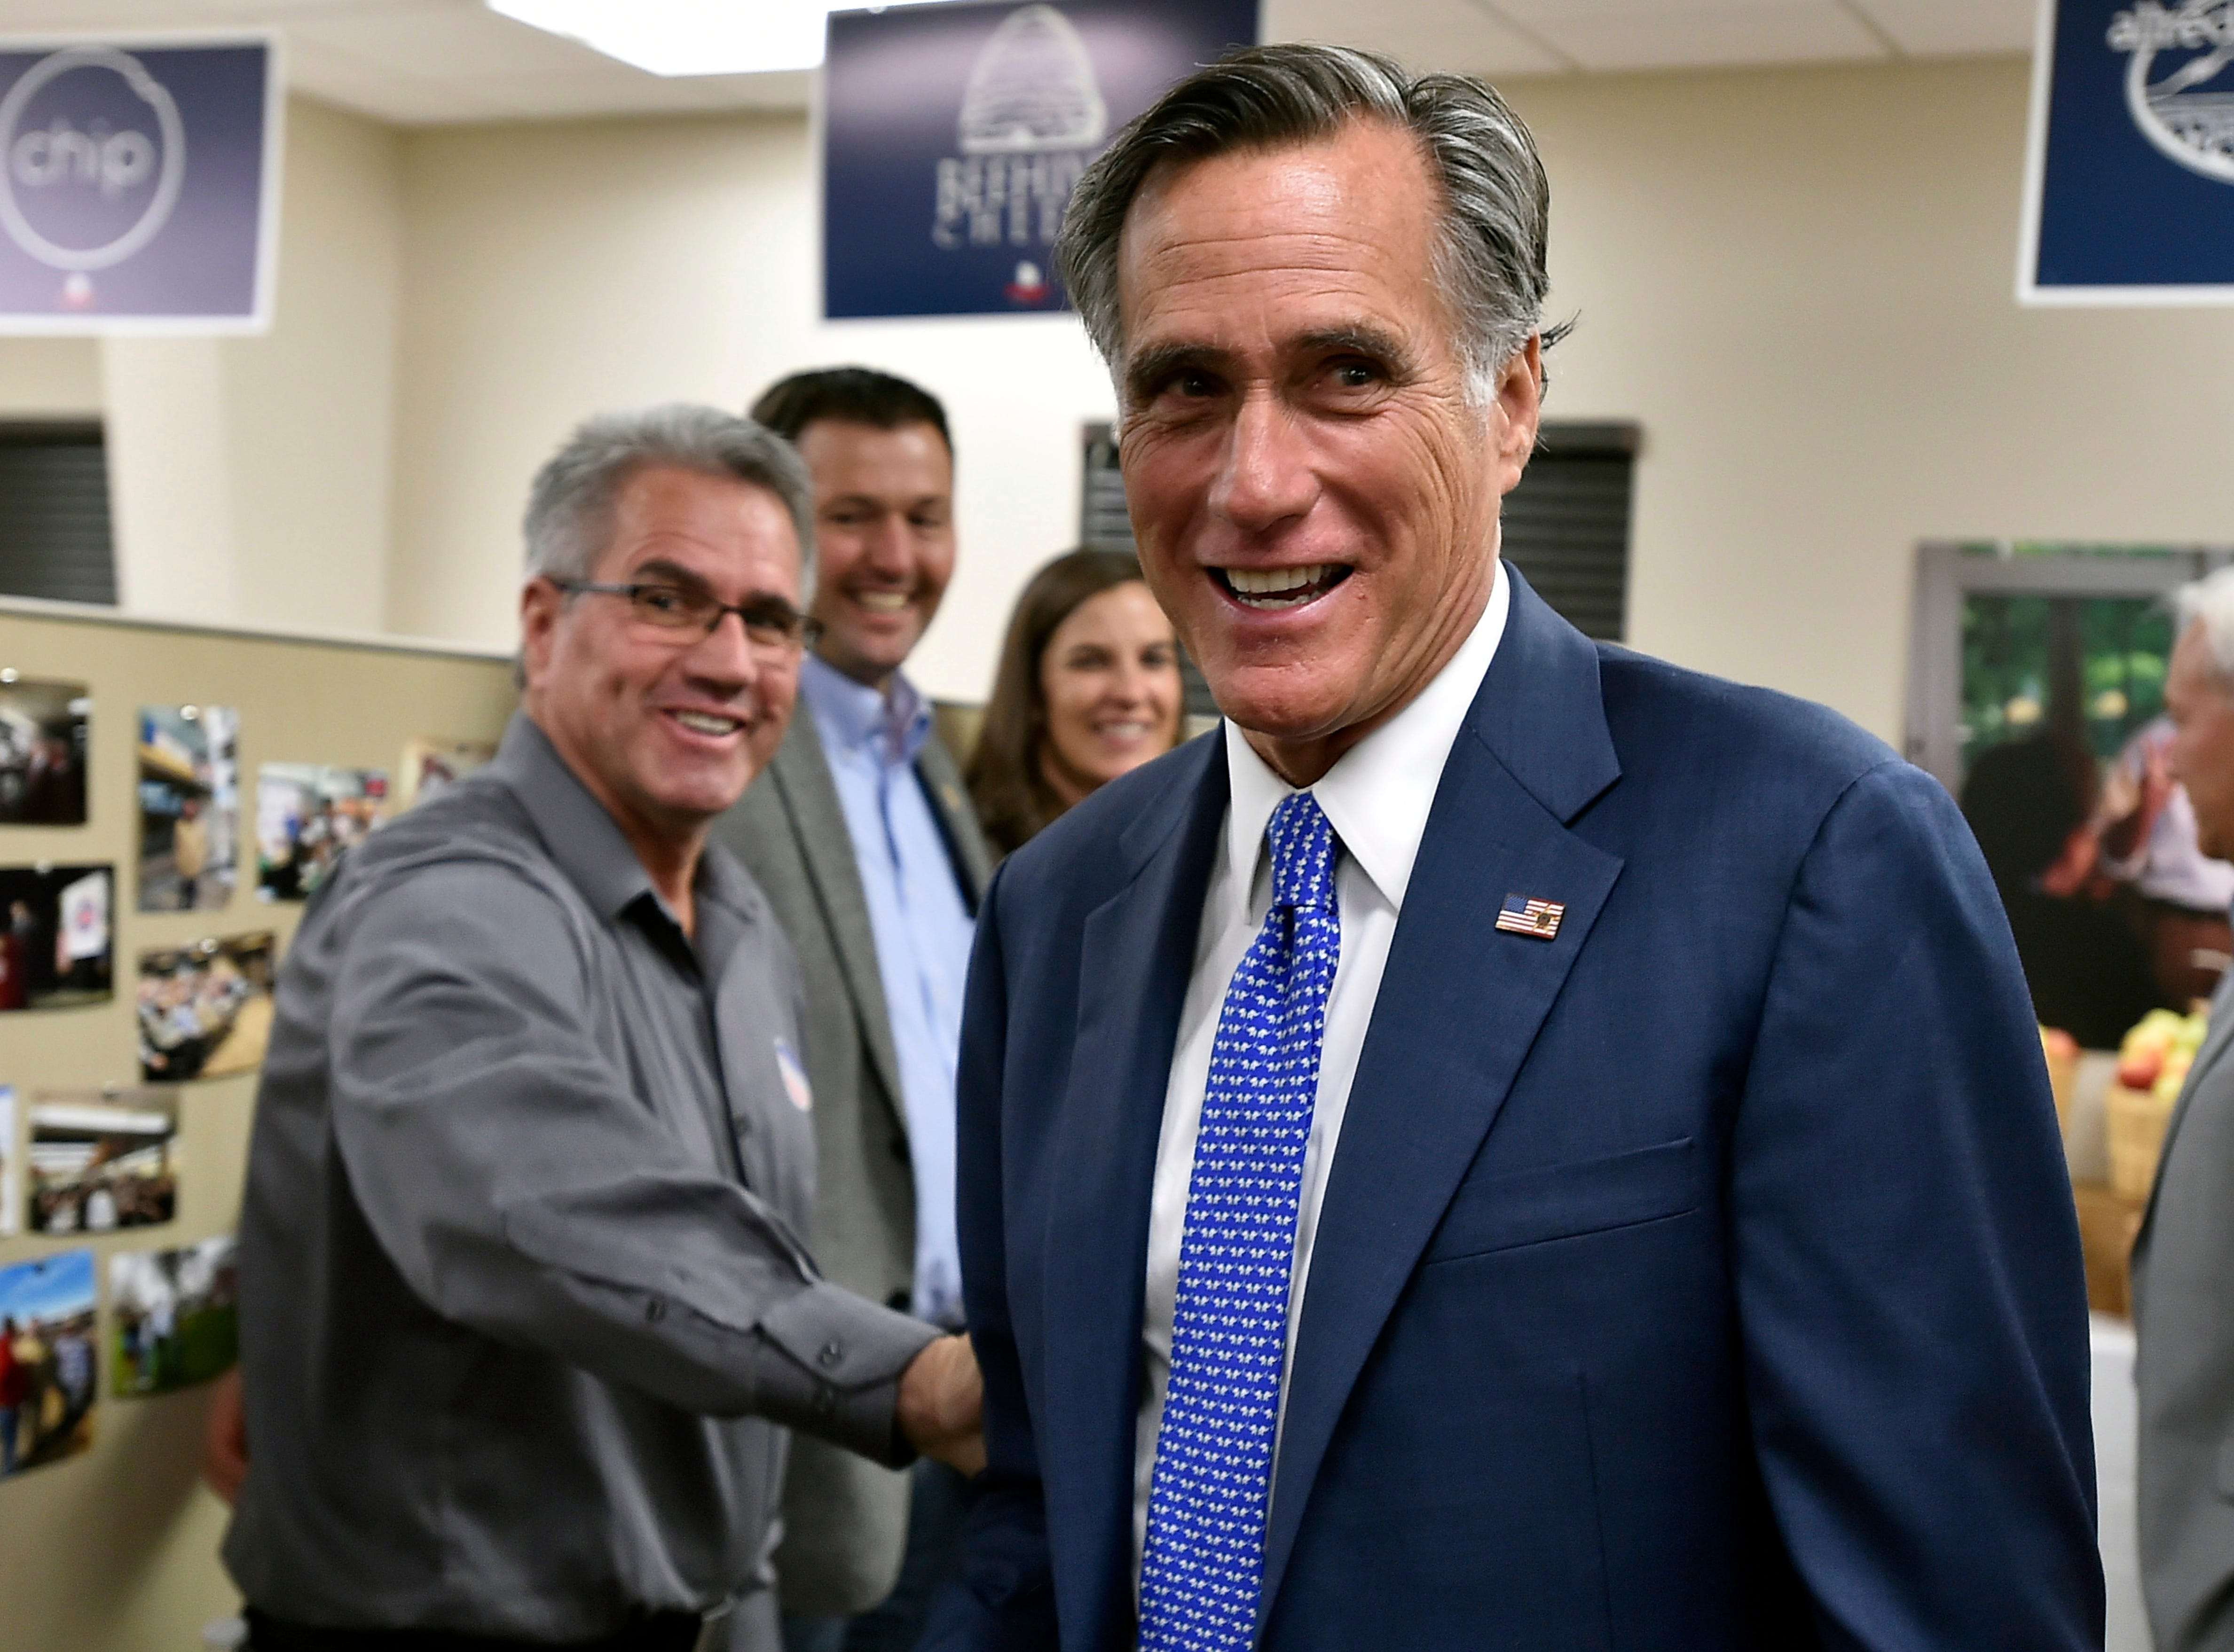 Republican Utah Senate candidate Mitt Romney greets supporters who gathered to await election results in Orem, Utah, Tuesday Nov 6, 2018.